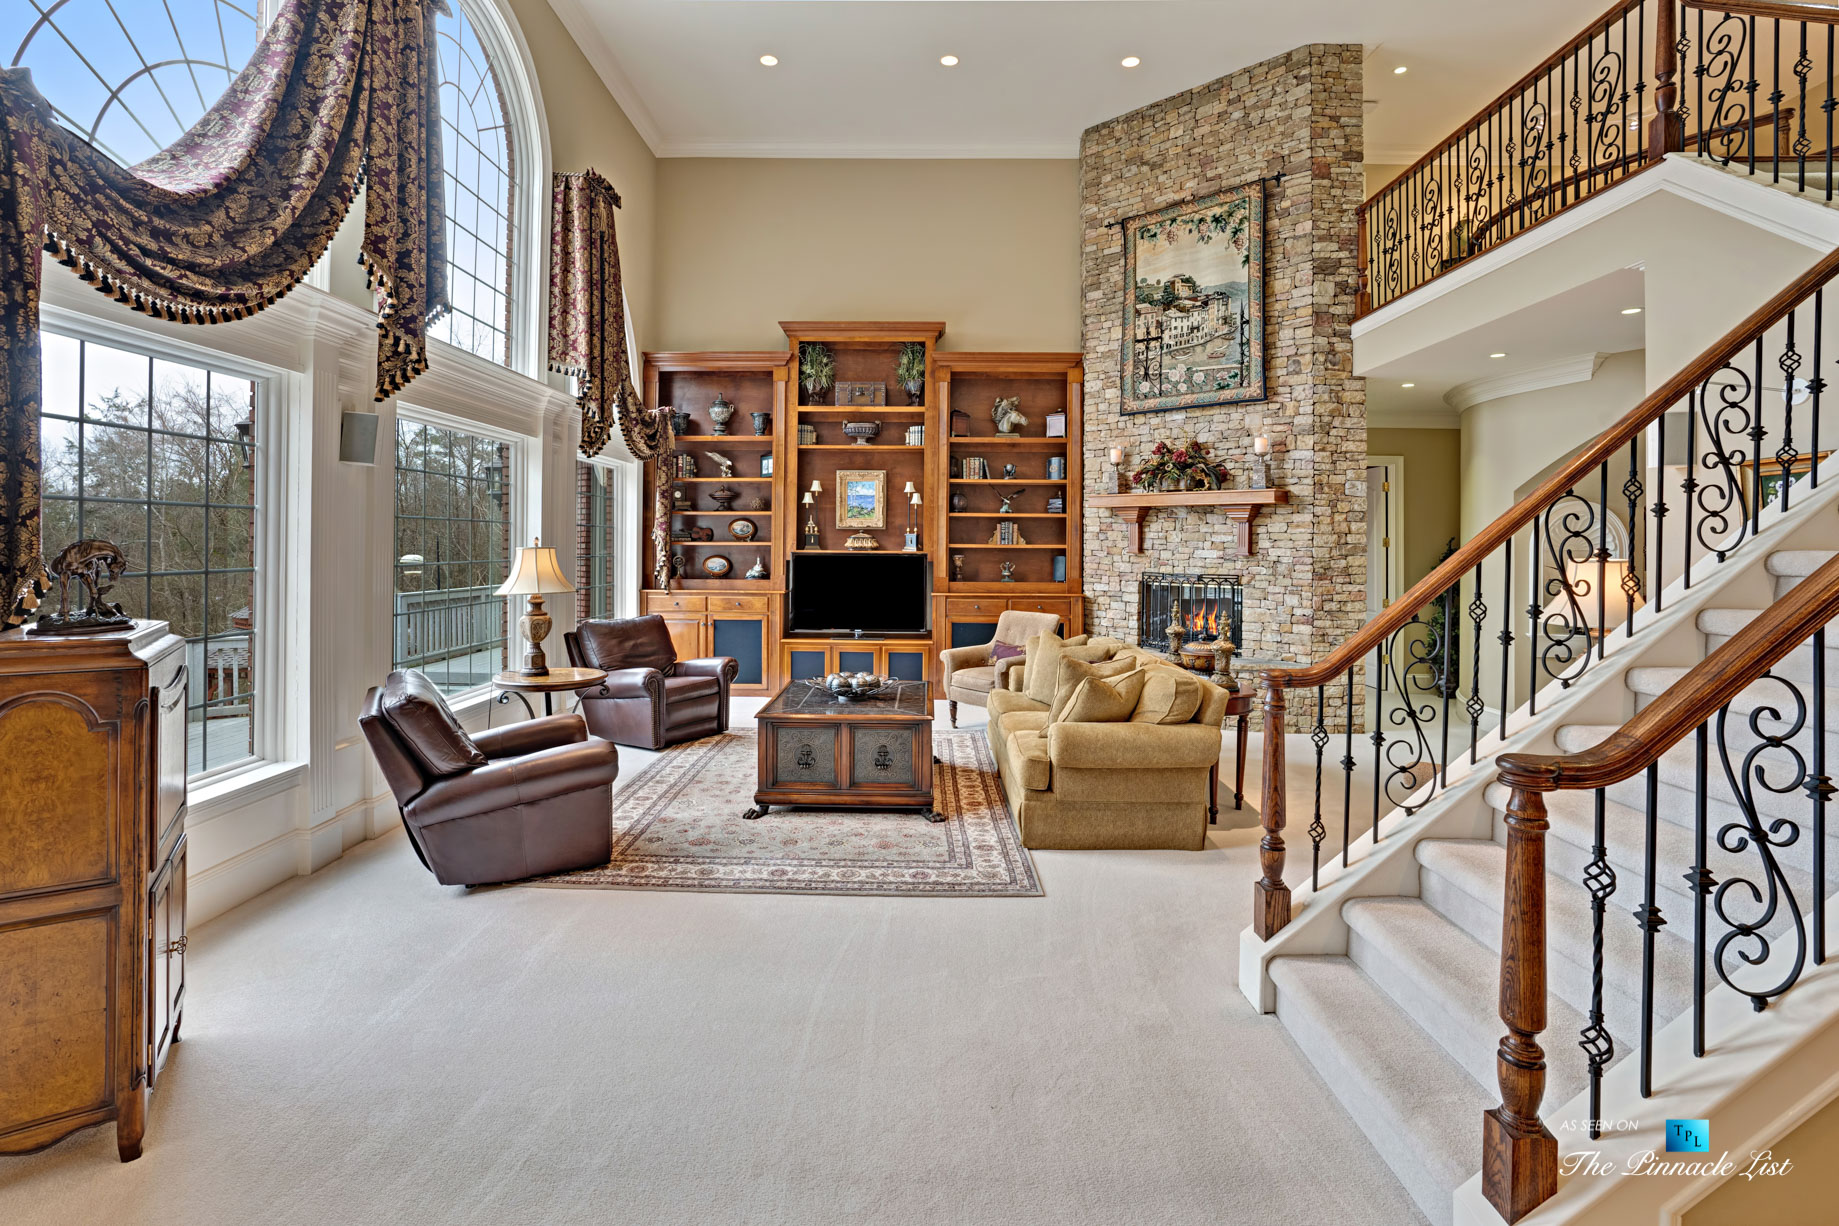 2219 Costley Mill Rd NE, Conyers, GA, USA - Living Room with Fireplace - Luxury Real Estate - Equestrian Country Home